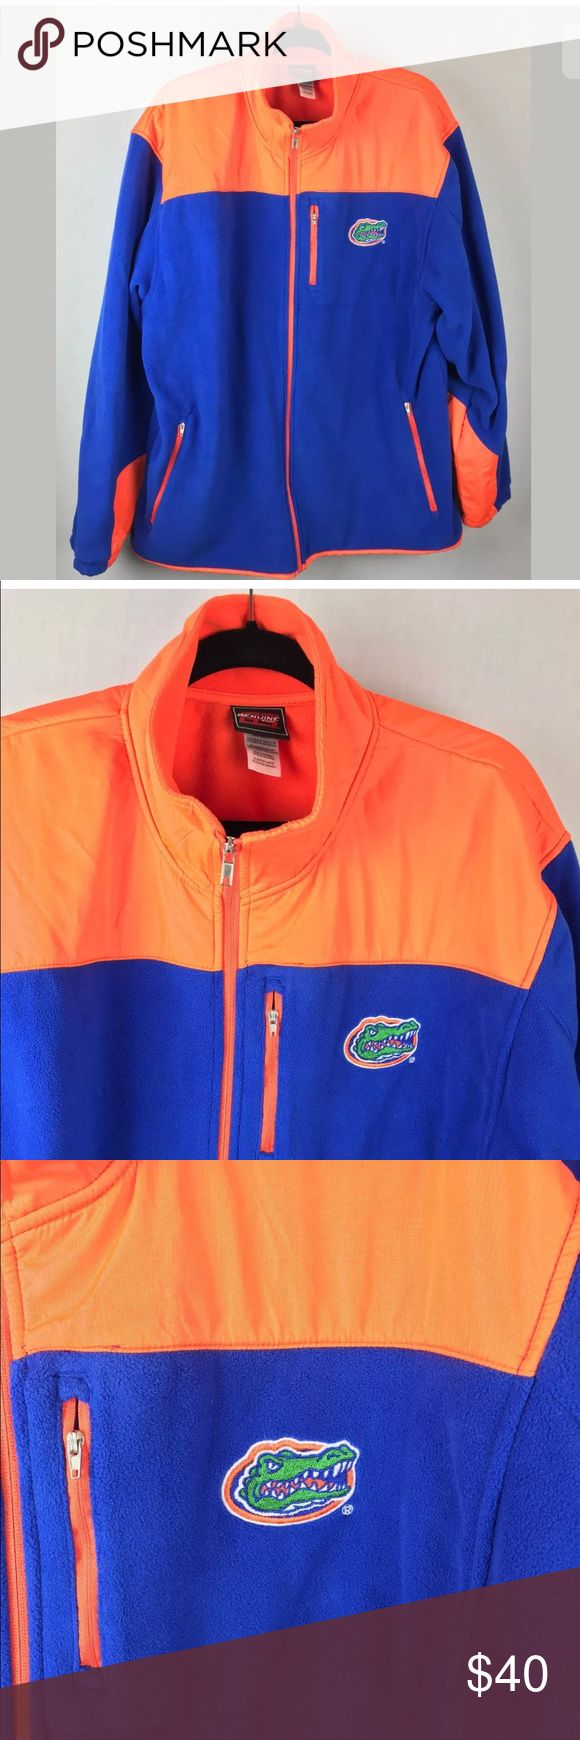 """Florida Gators UF genuine stuff men's jacket XL Genuine Stuff Collegiate Florida Gators Full Zipper micro fleece nylon jacket Mens XL  From my husband's closet He is original owner He wore it once and then our son decided to go a rival school so hubby feels bad about wearing it now We do bleed orange and blue but need to tone it down for the next few years. (Go Gators)  Excellent condition. under arms across the back 27"""" Shoulder to hem down the back  31"""" genuine stuff Jackets & Coats…"""